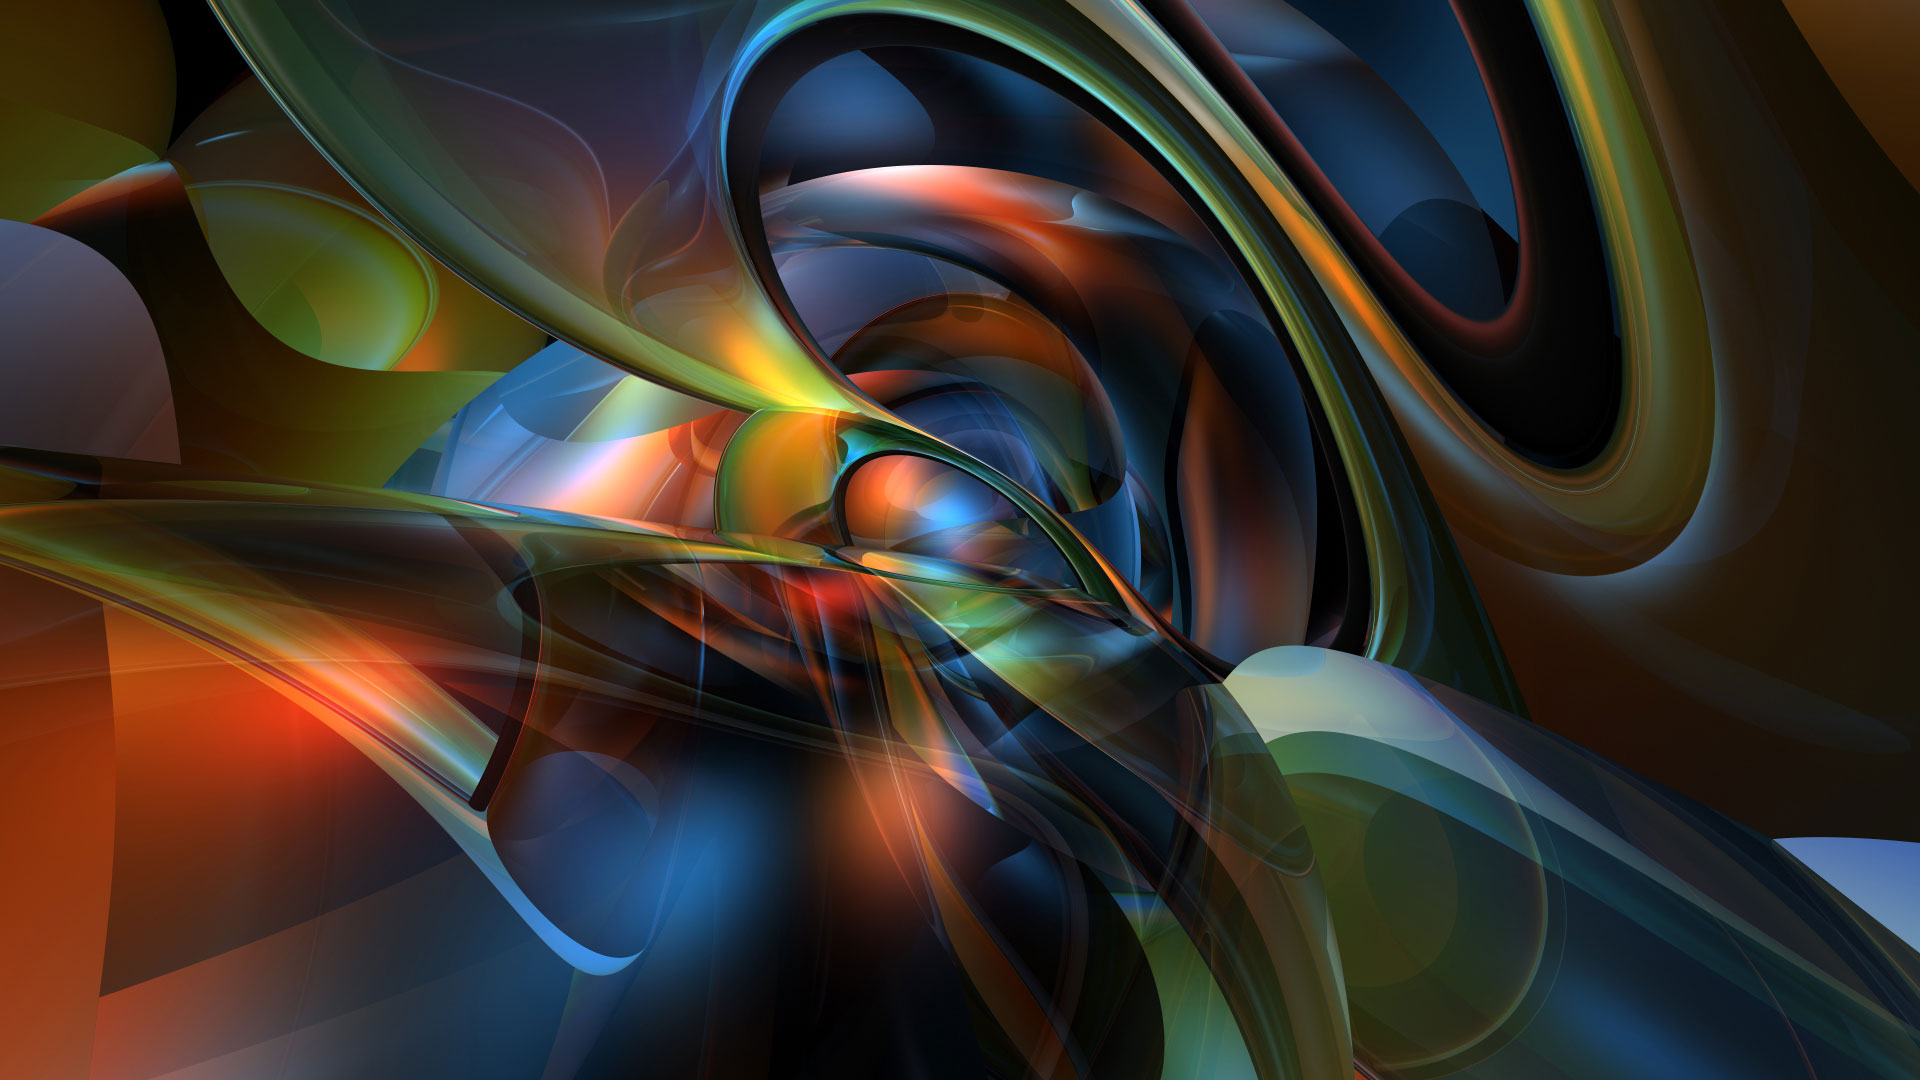 20 3D Abstract Backgrounds Design Images